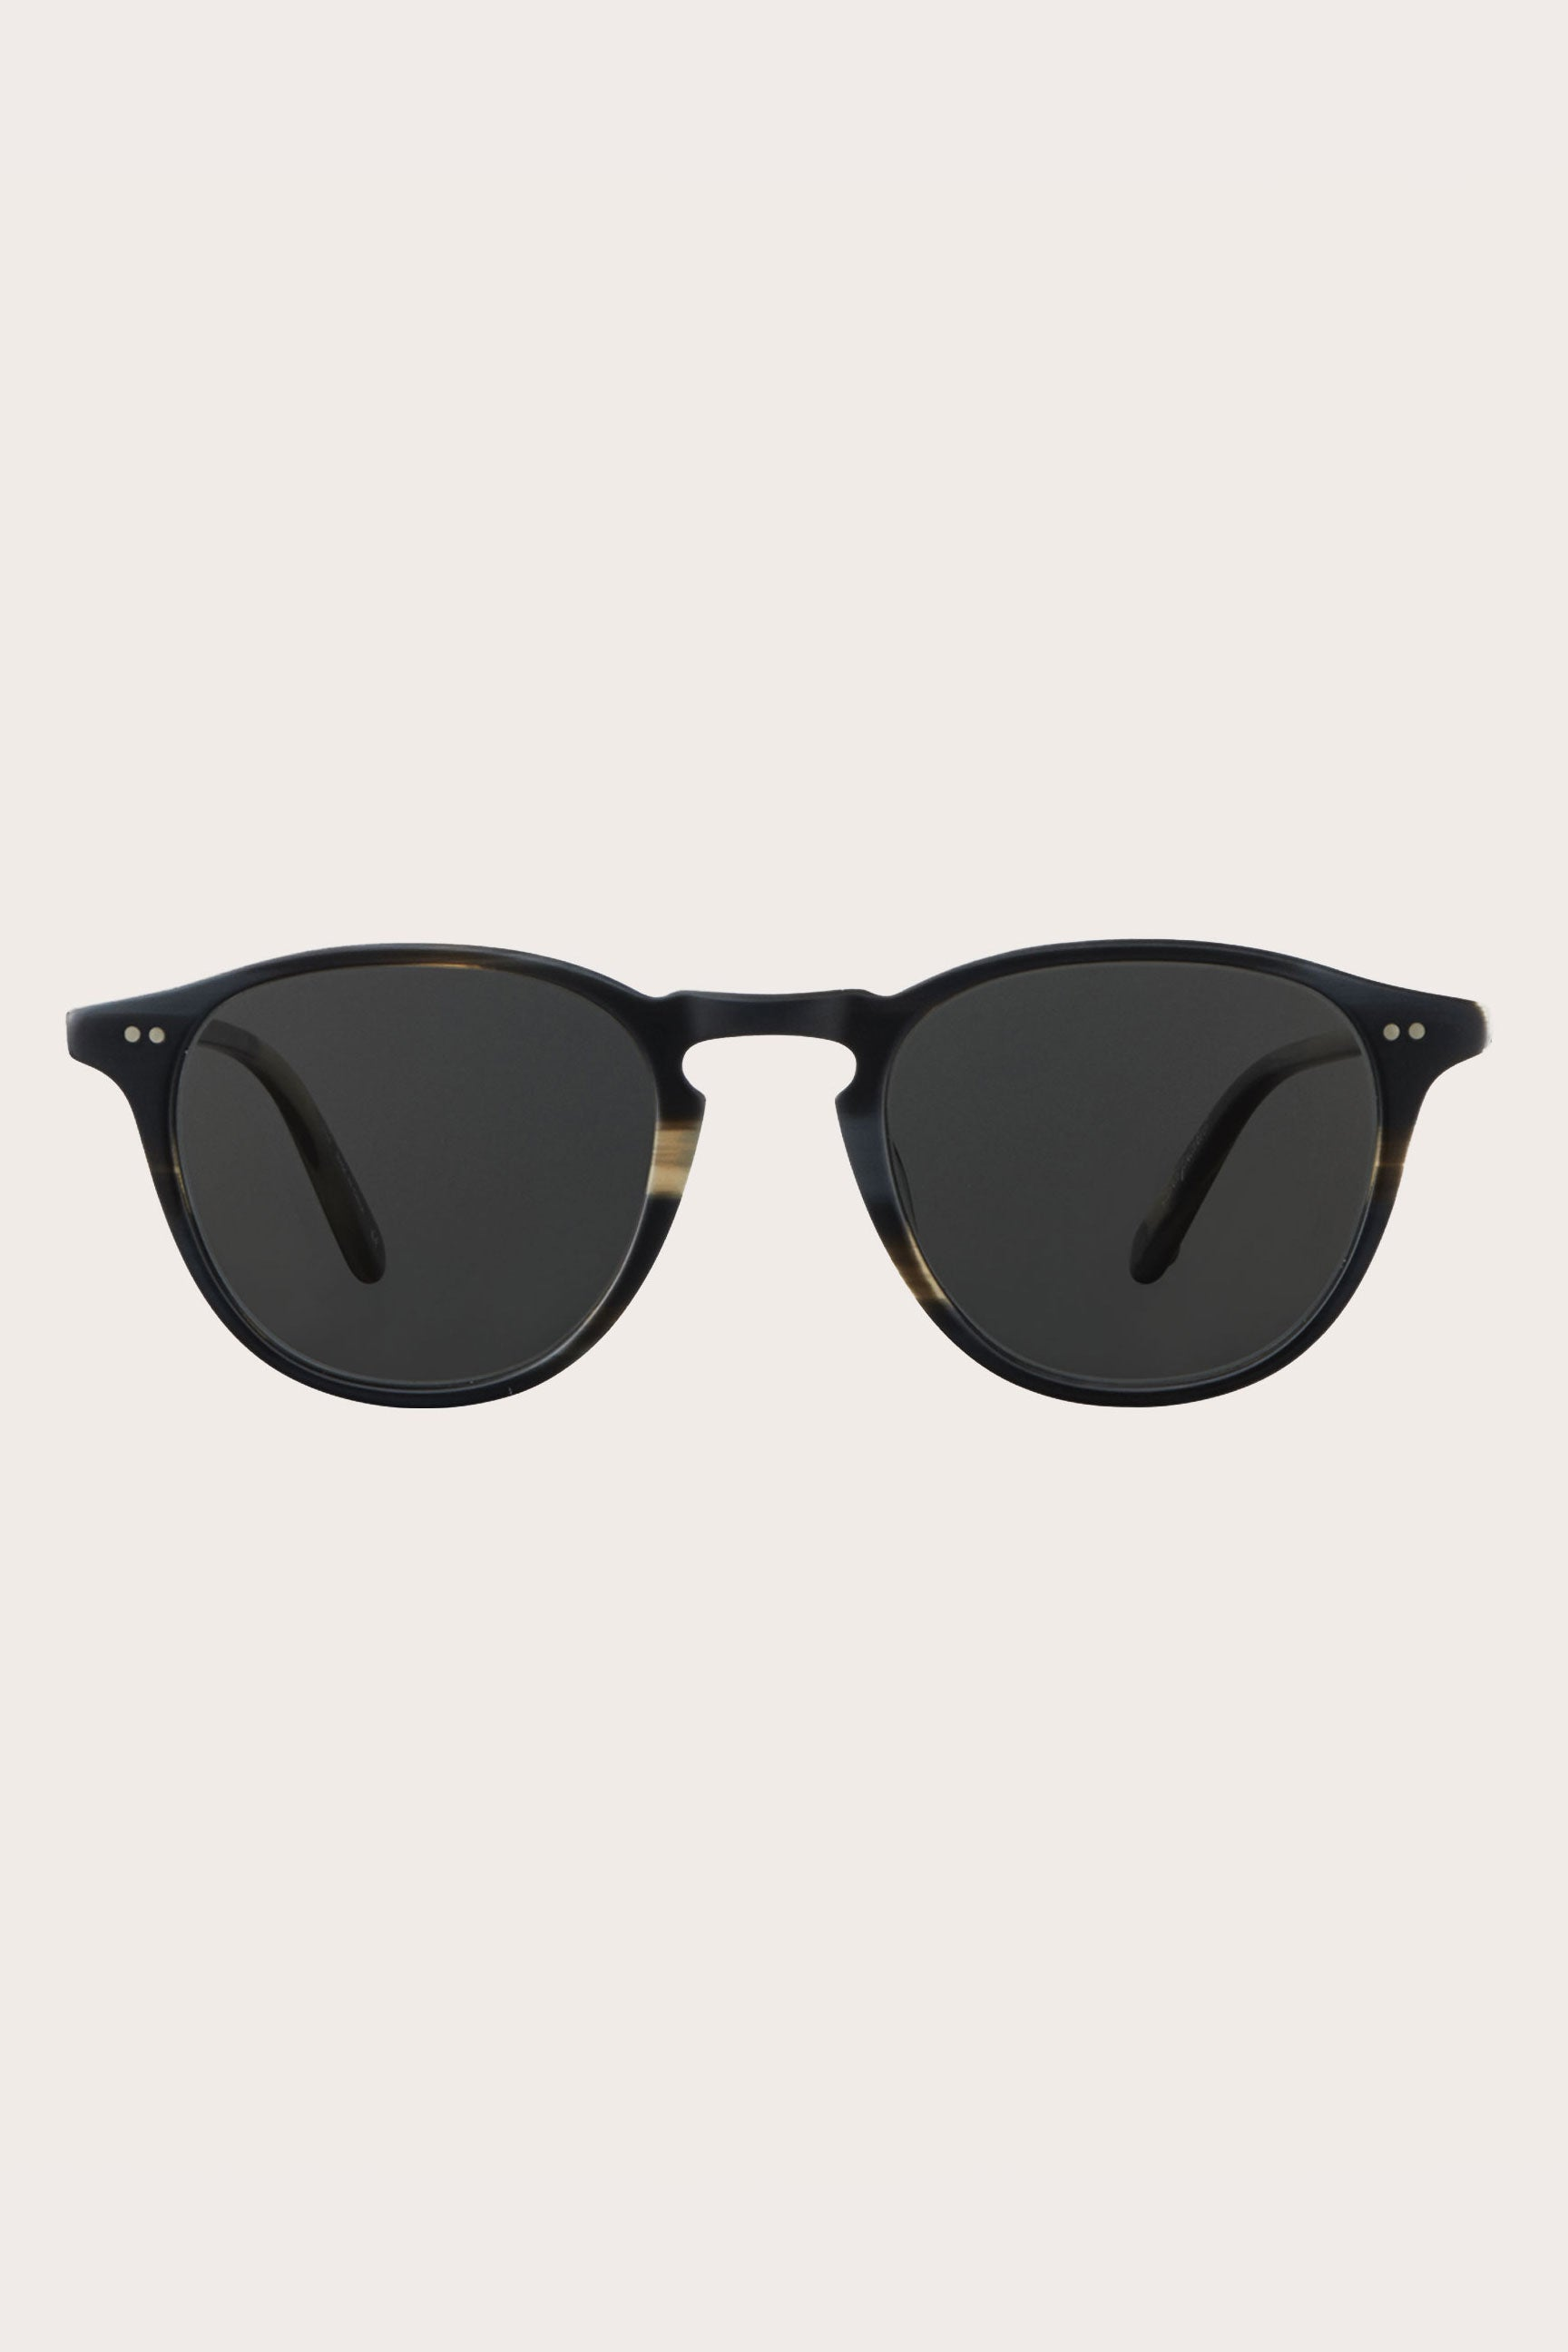 Garrett Leight - Hampton Sunglasses, Basalt